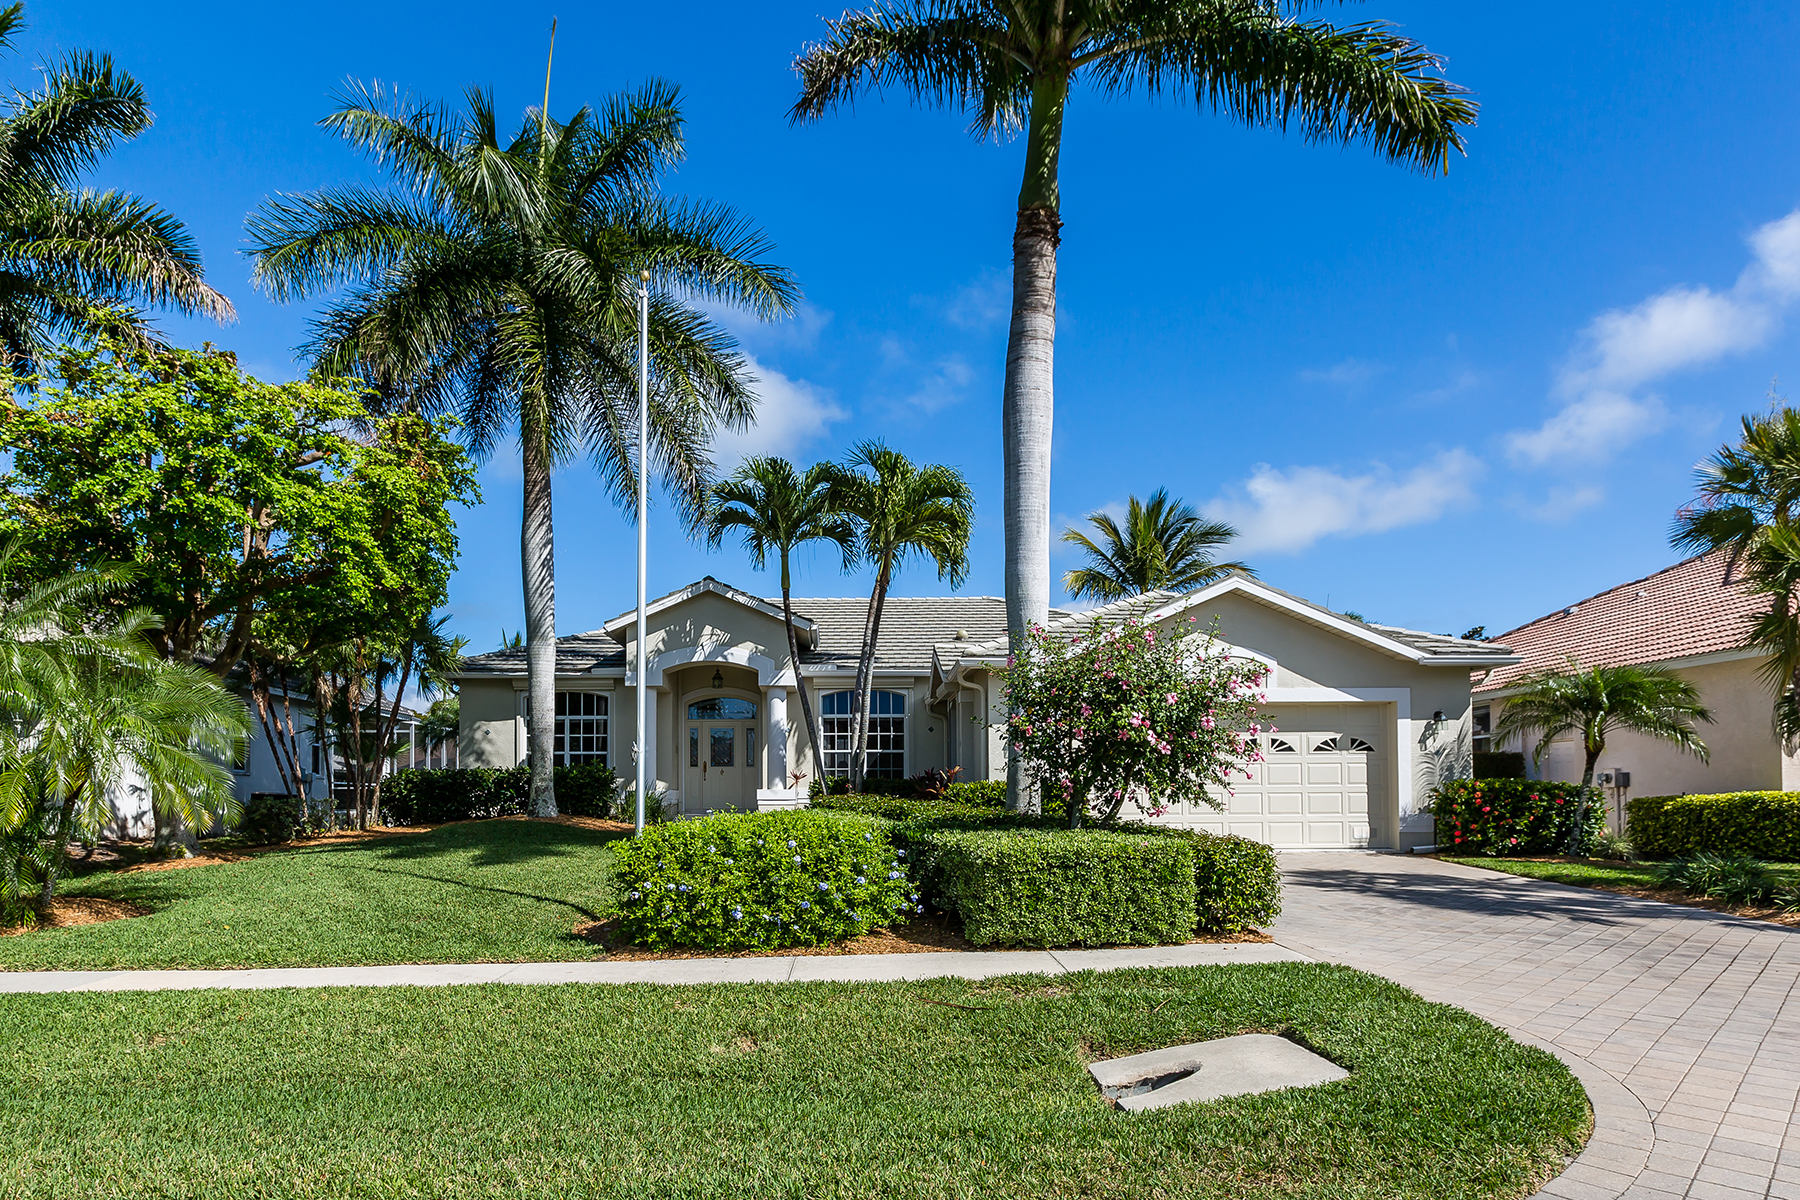 Single Family Home for Sale at MARCO ISLAND 1830 Menorca Ct, Marco Island, Florida 34145 United States